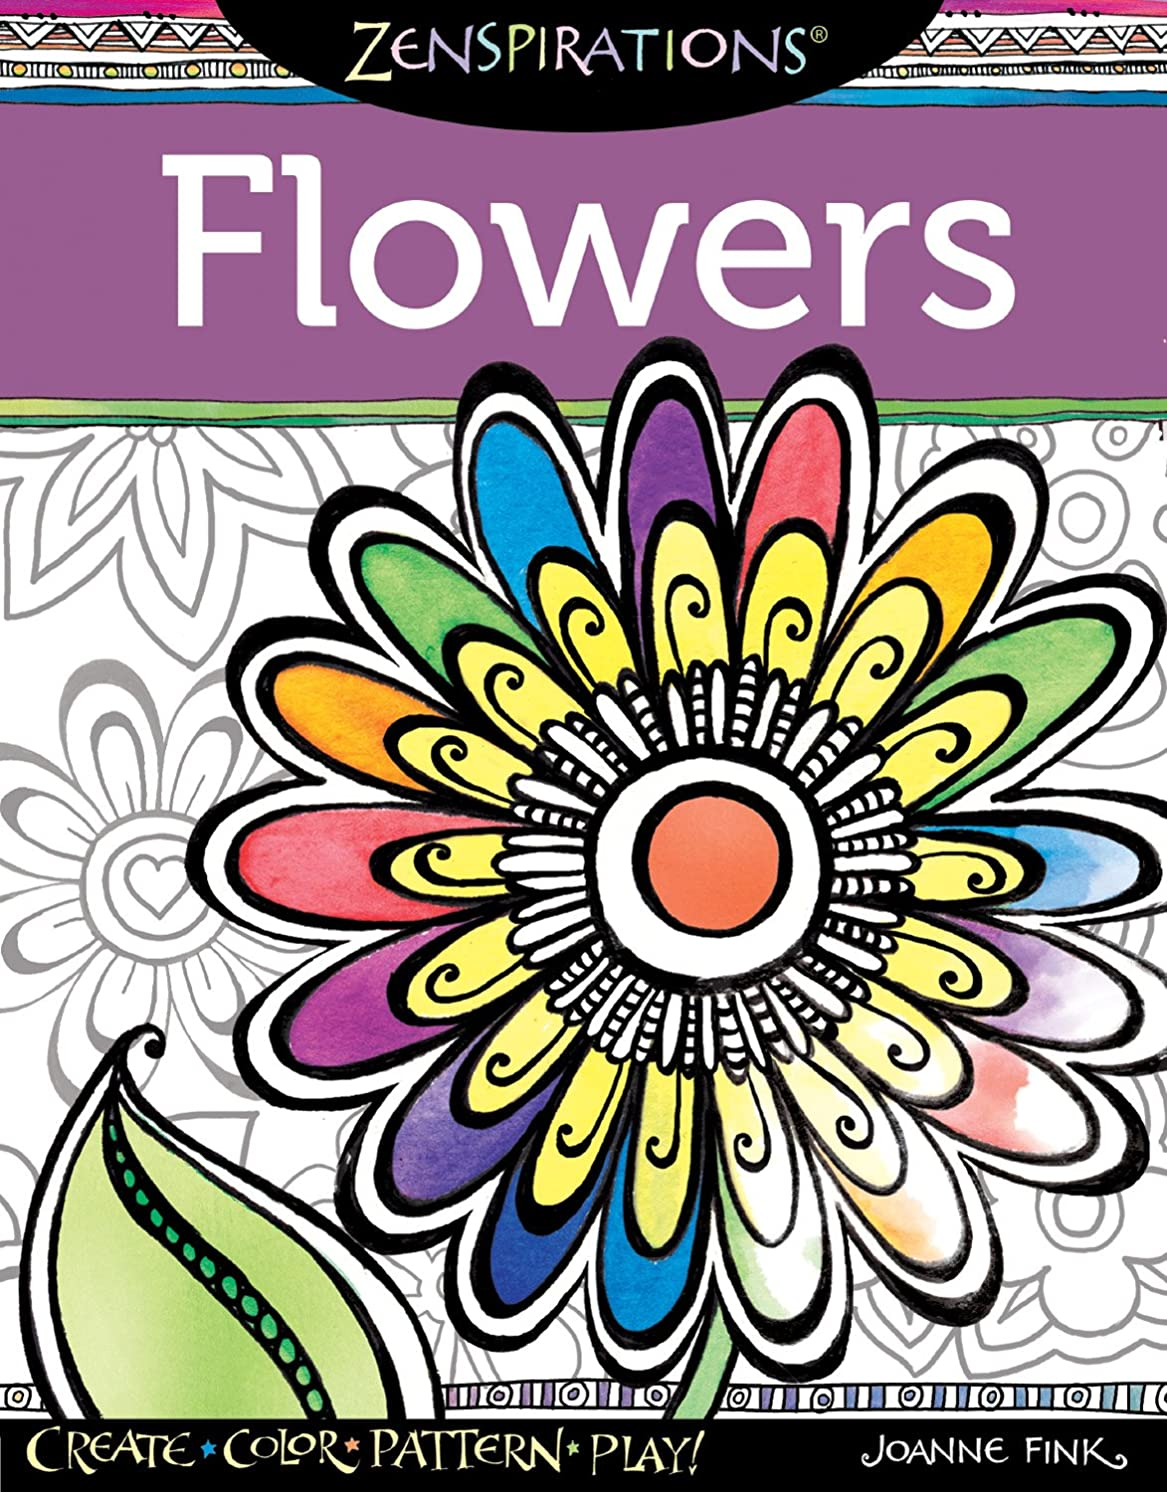 Zenspirations(R) Coloring Book Flowers: Create, Color, Pattern, Play! (Design Originals) 28 Whimsical Floral Designs with Easy-to-Follow Artistic Advice & Finished Examples from Designer Joanne Fink